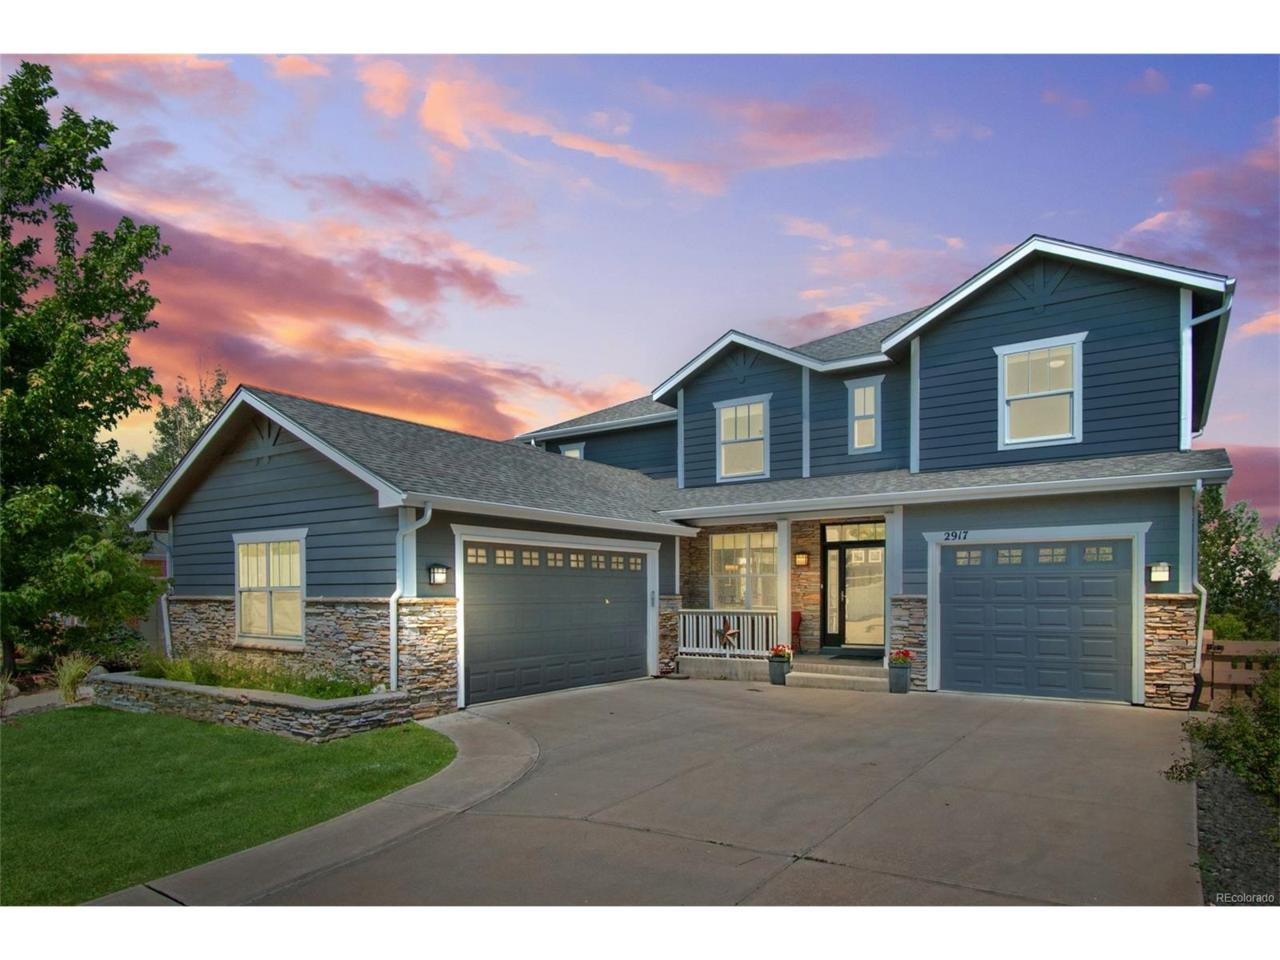 2917 Newbury Court, Highlands Ranch, CO 80126 (MLS #6263569) :: 8z Real Estate